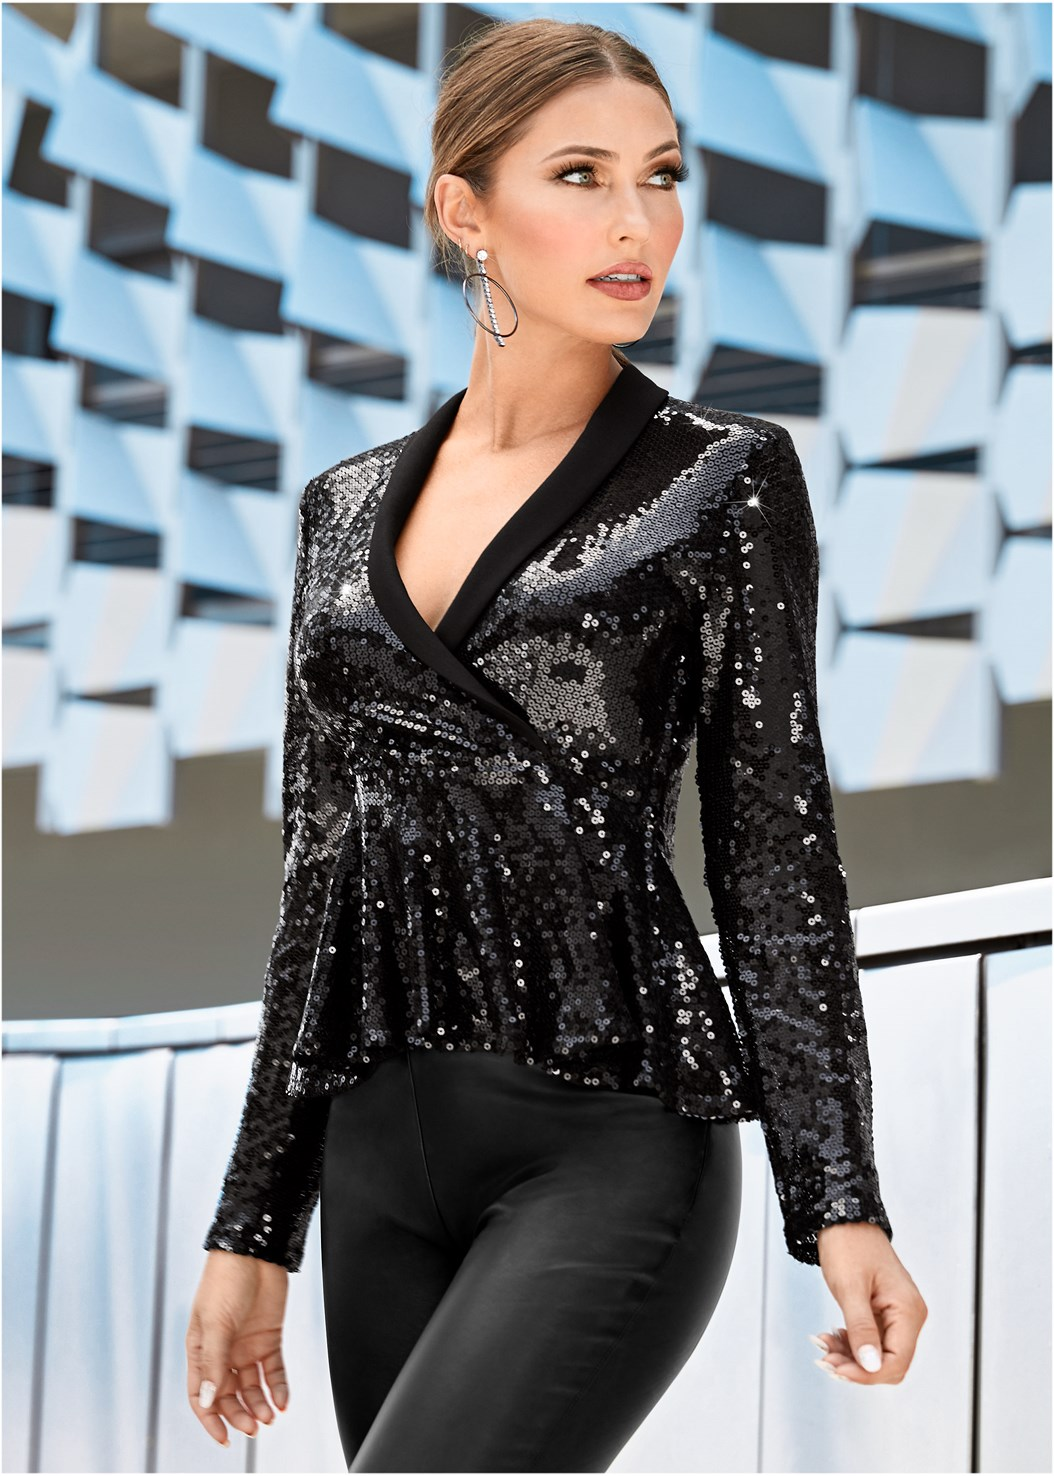 Sequin Peplum Top,Mid Rise Slimming Stretch Jeggings,High Heel Strappy Sandals,Rhinestone Fringe Earrings